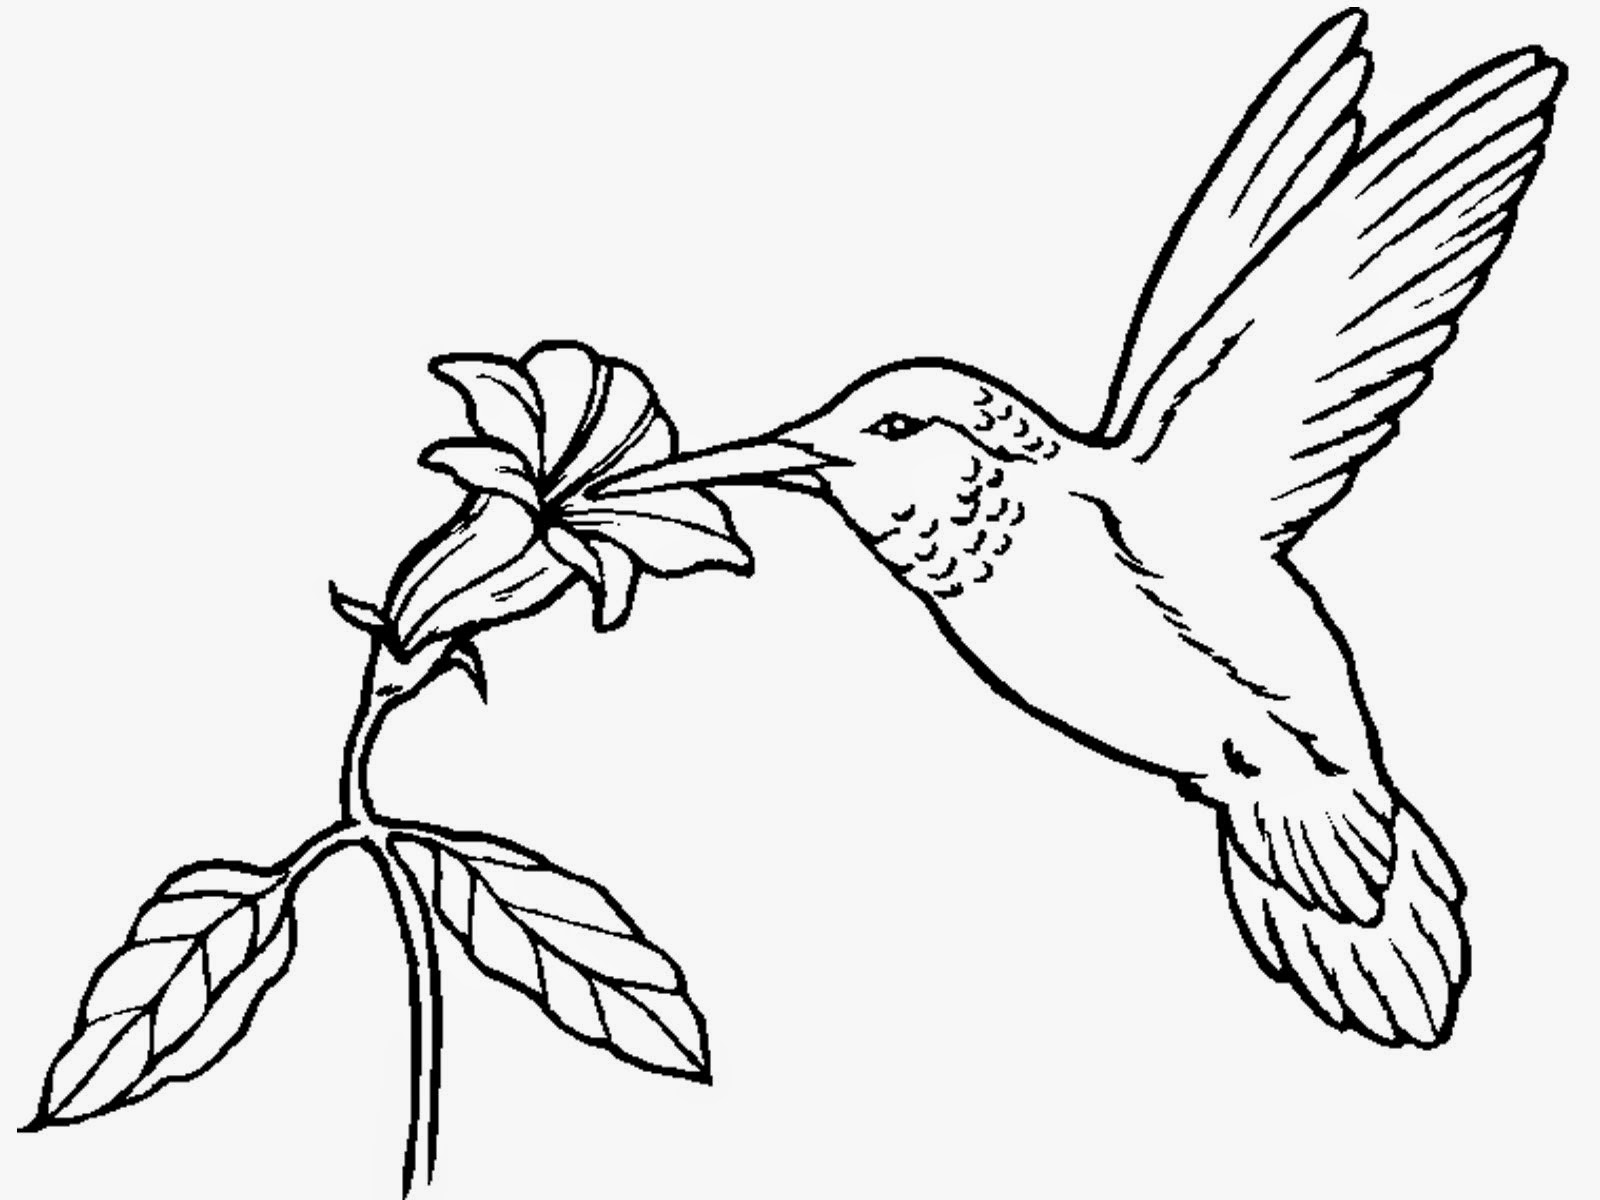 Coloring Pages Of Hummingbirds - Agpilustracion